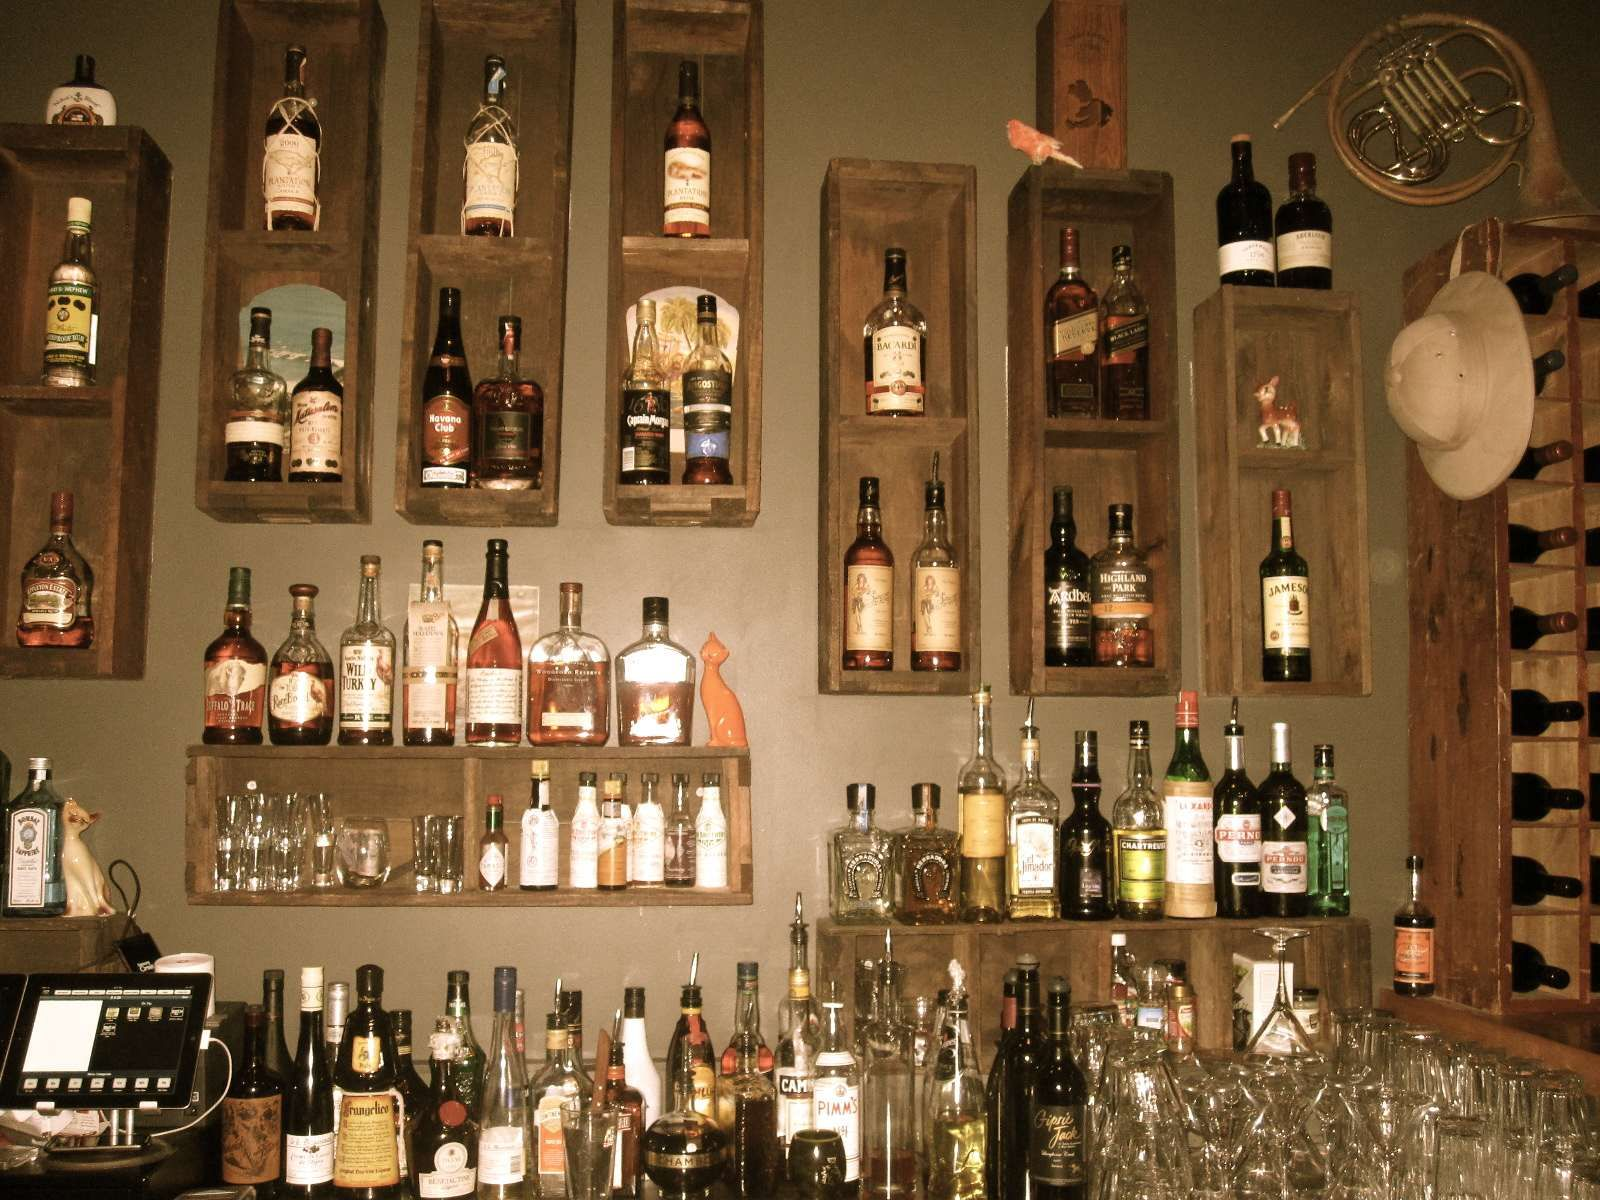 Behind The Bar Design | Behind The Bar Love The Perfect Wooden Detailing